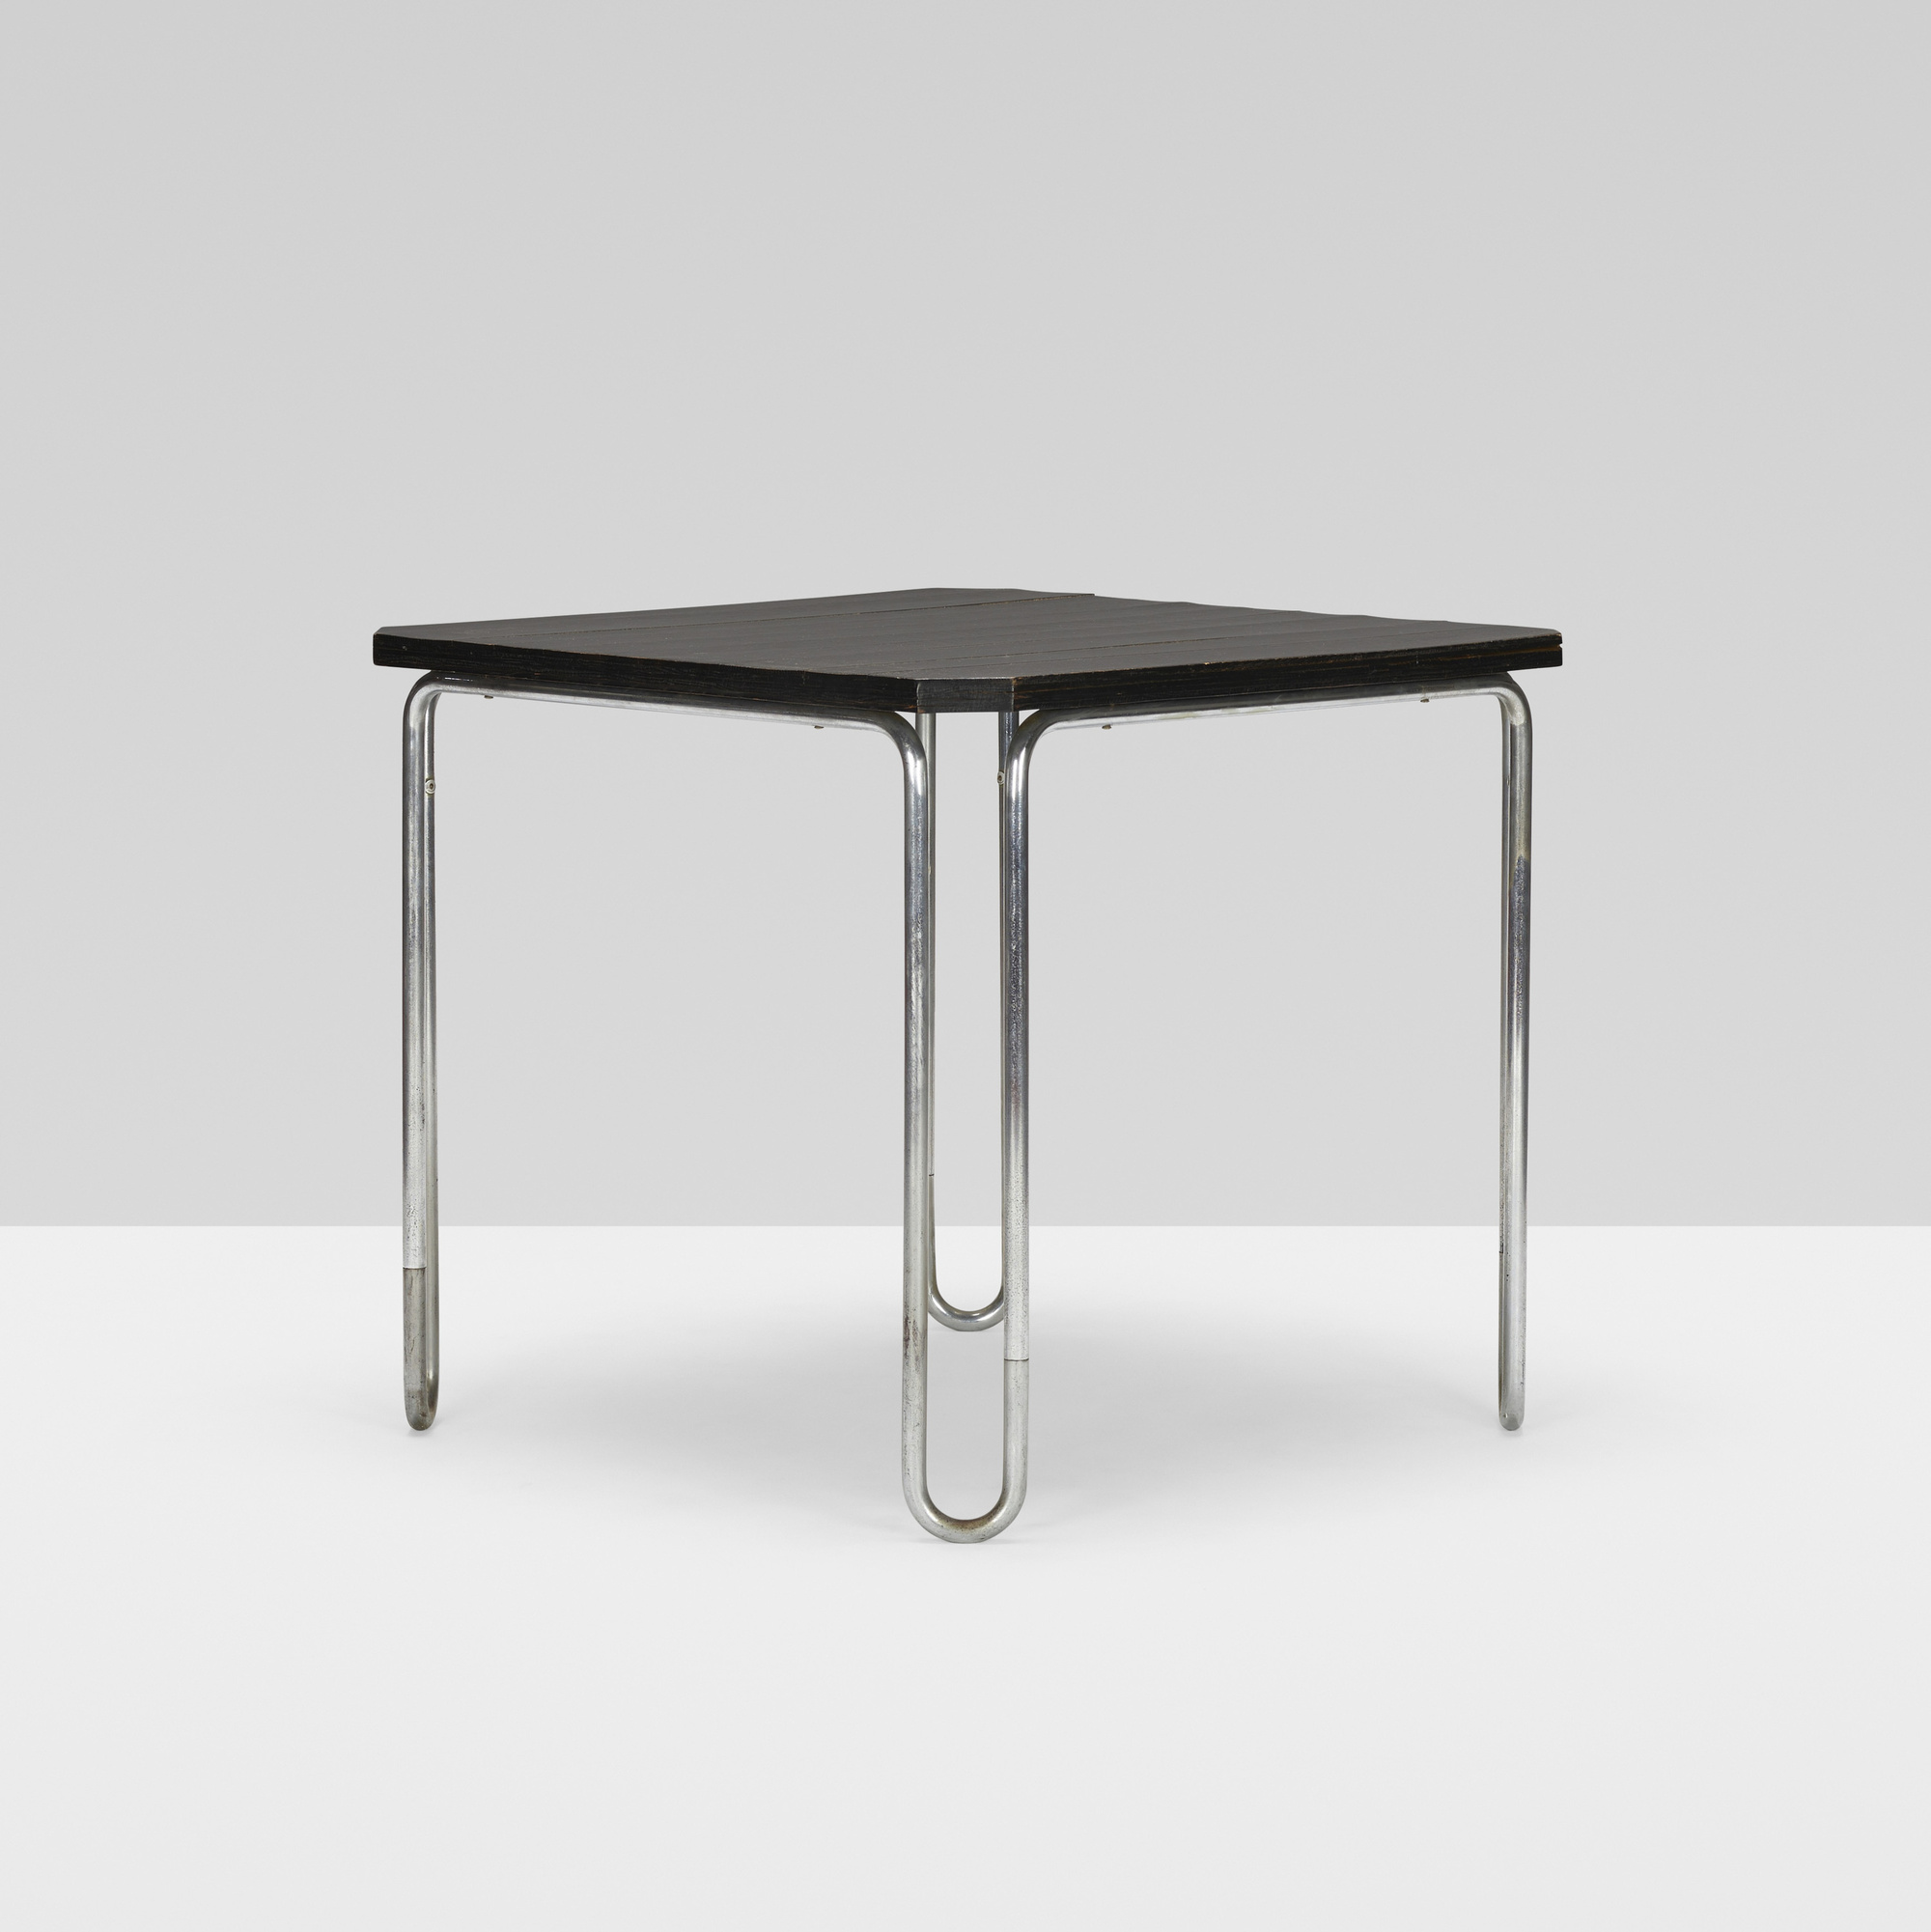 146 Marcel Breuer Table Model B10 2 Of 3